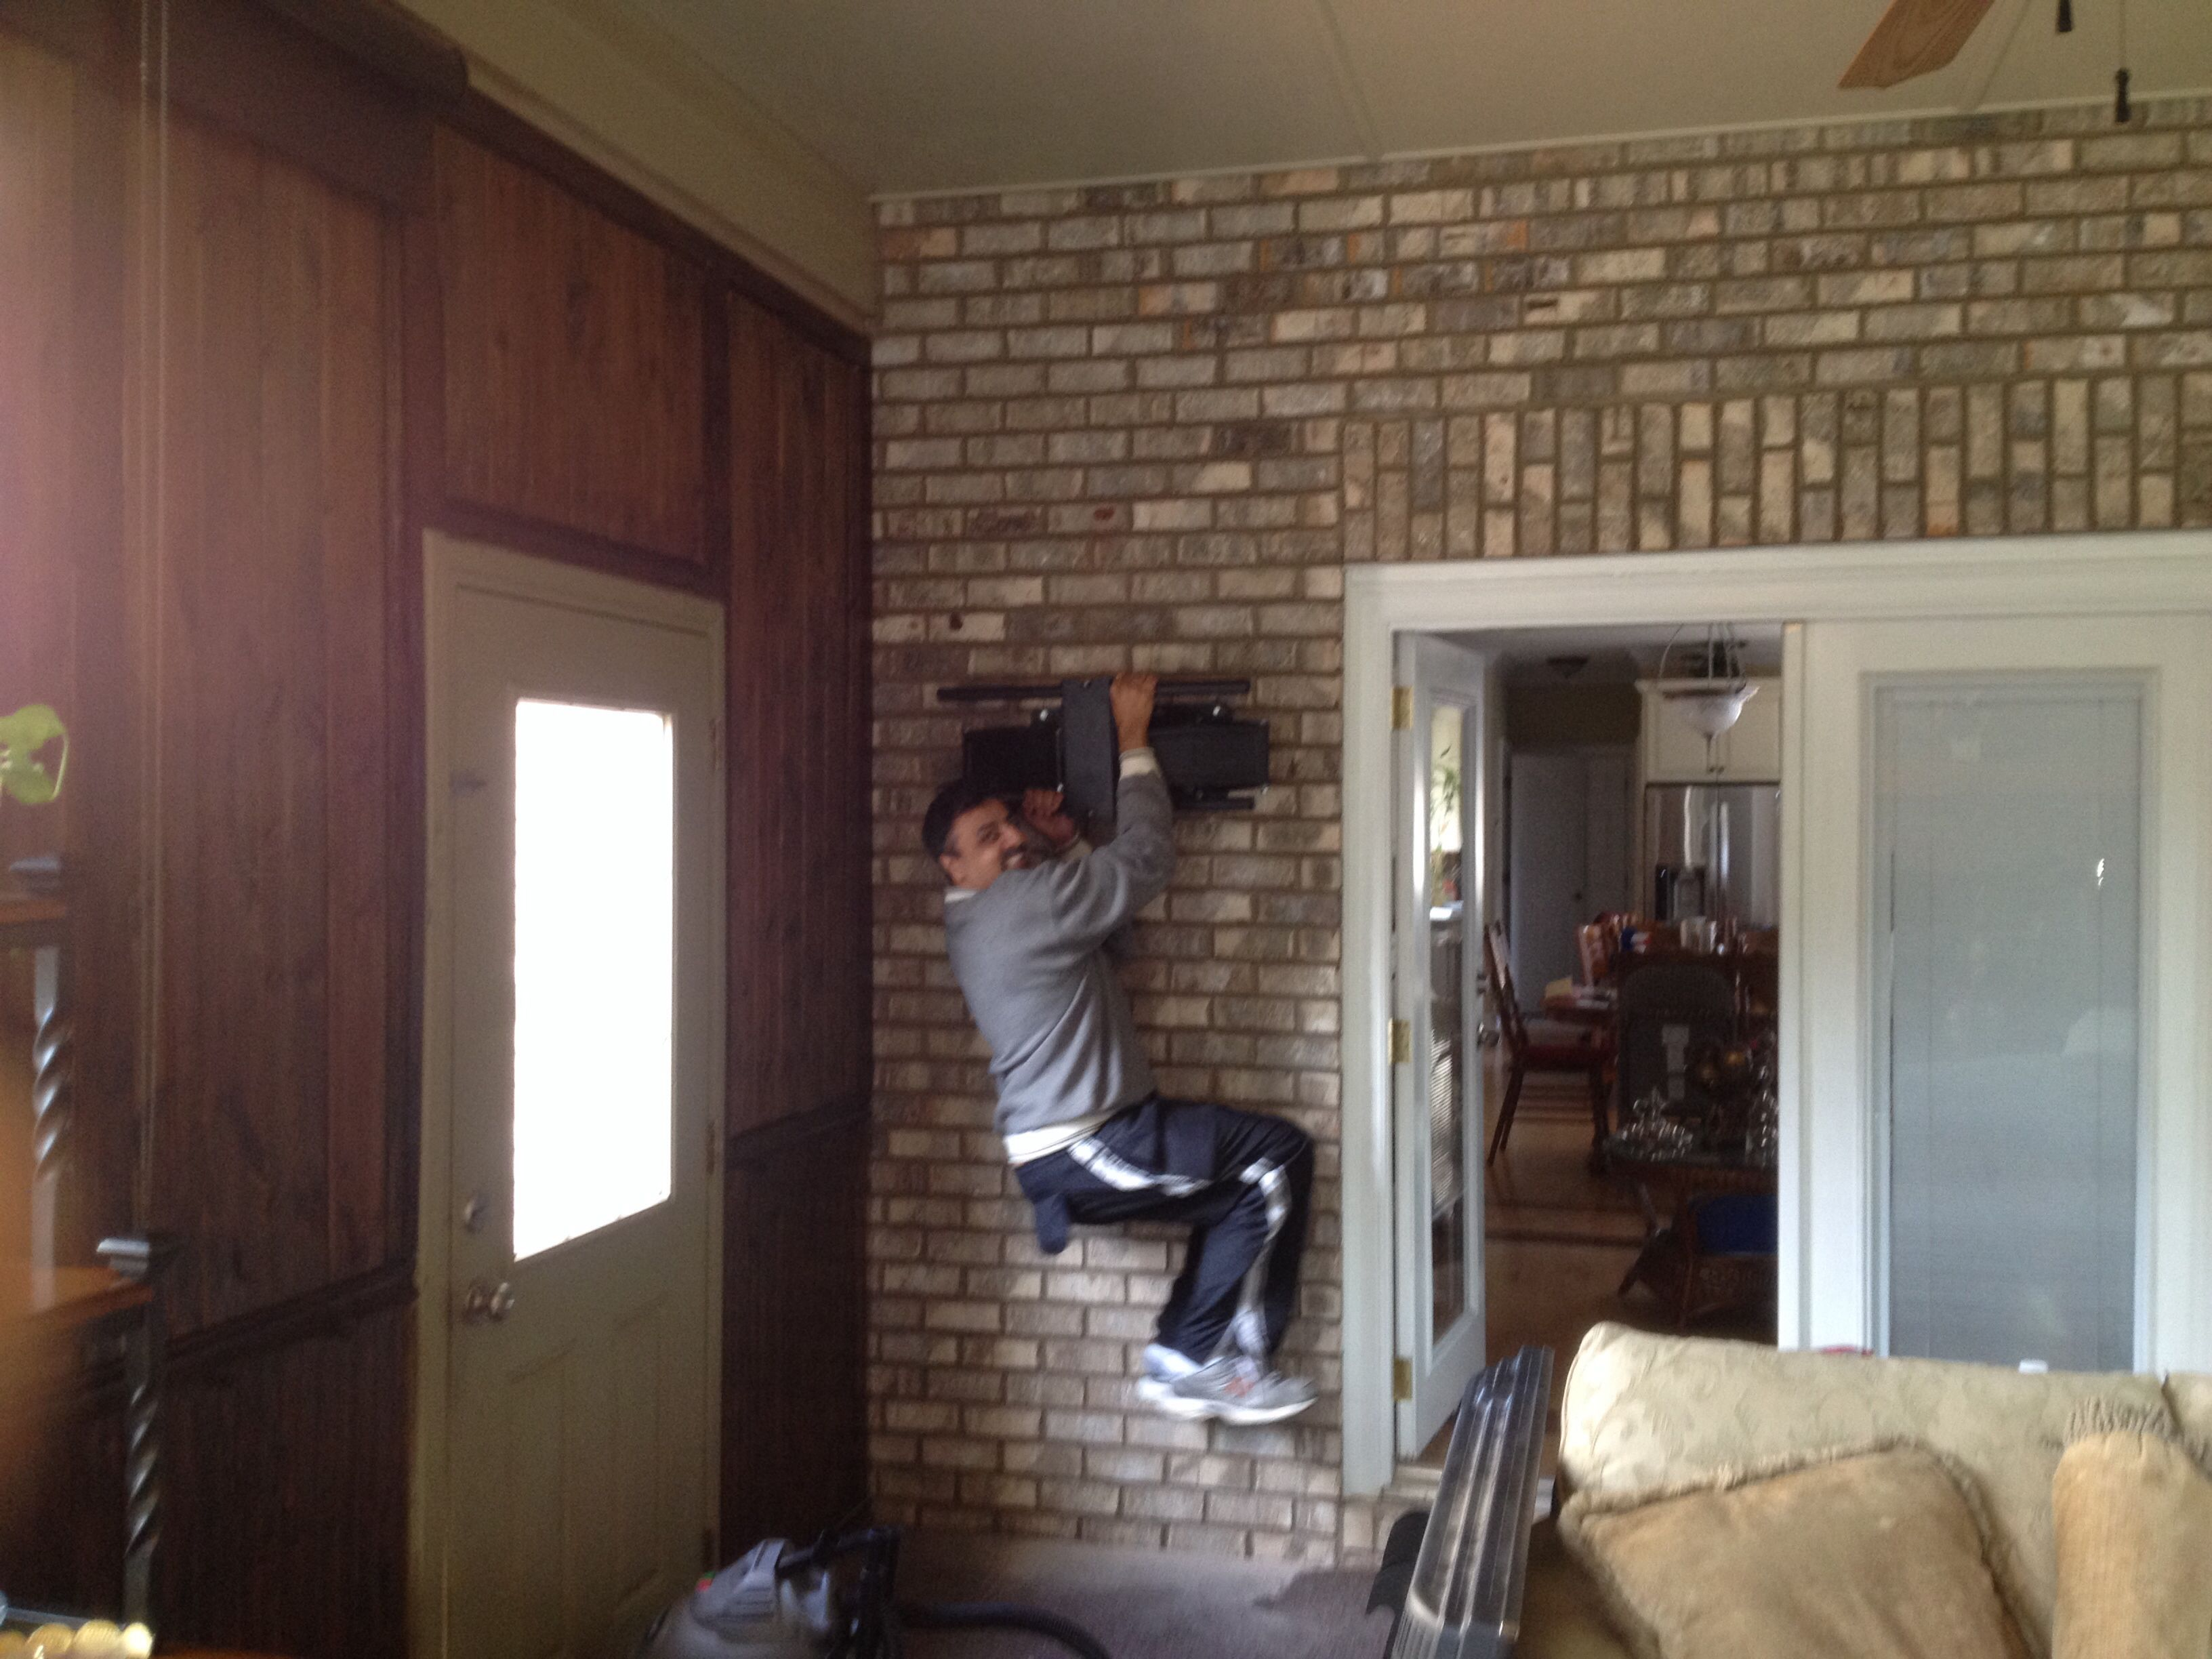 200 LB WEIGHT TEST FOR BRICK WALL FULL MOTION TV MOUNT INSTALLATION!  Charlotte Home